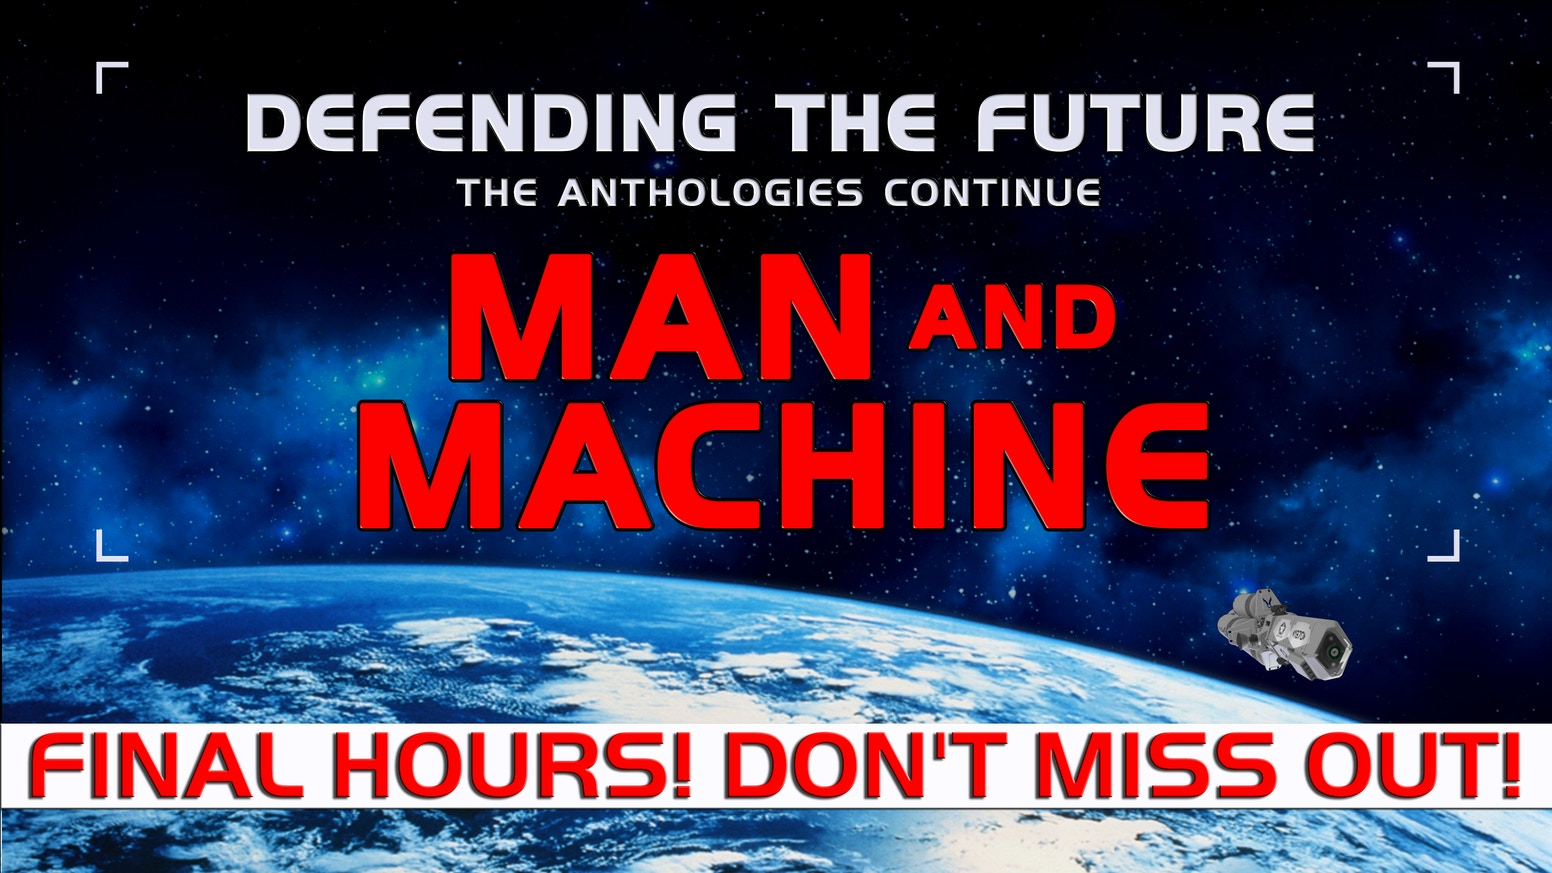 FINAL HOURS! Man & Machine from @eSpecbooks - 16 Bonus Rewards Unlocked & Counting! $1 Pledge Level! Chance to Win Physical Prize Pack!